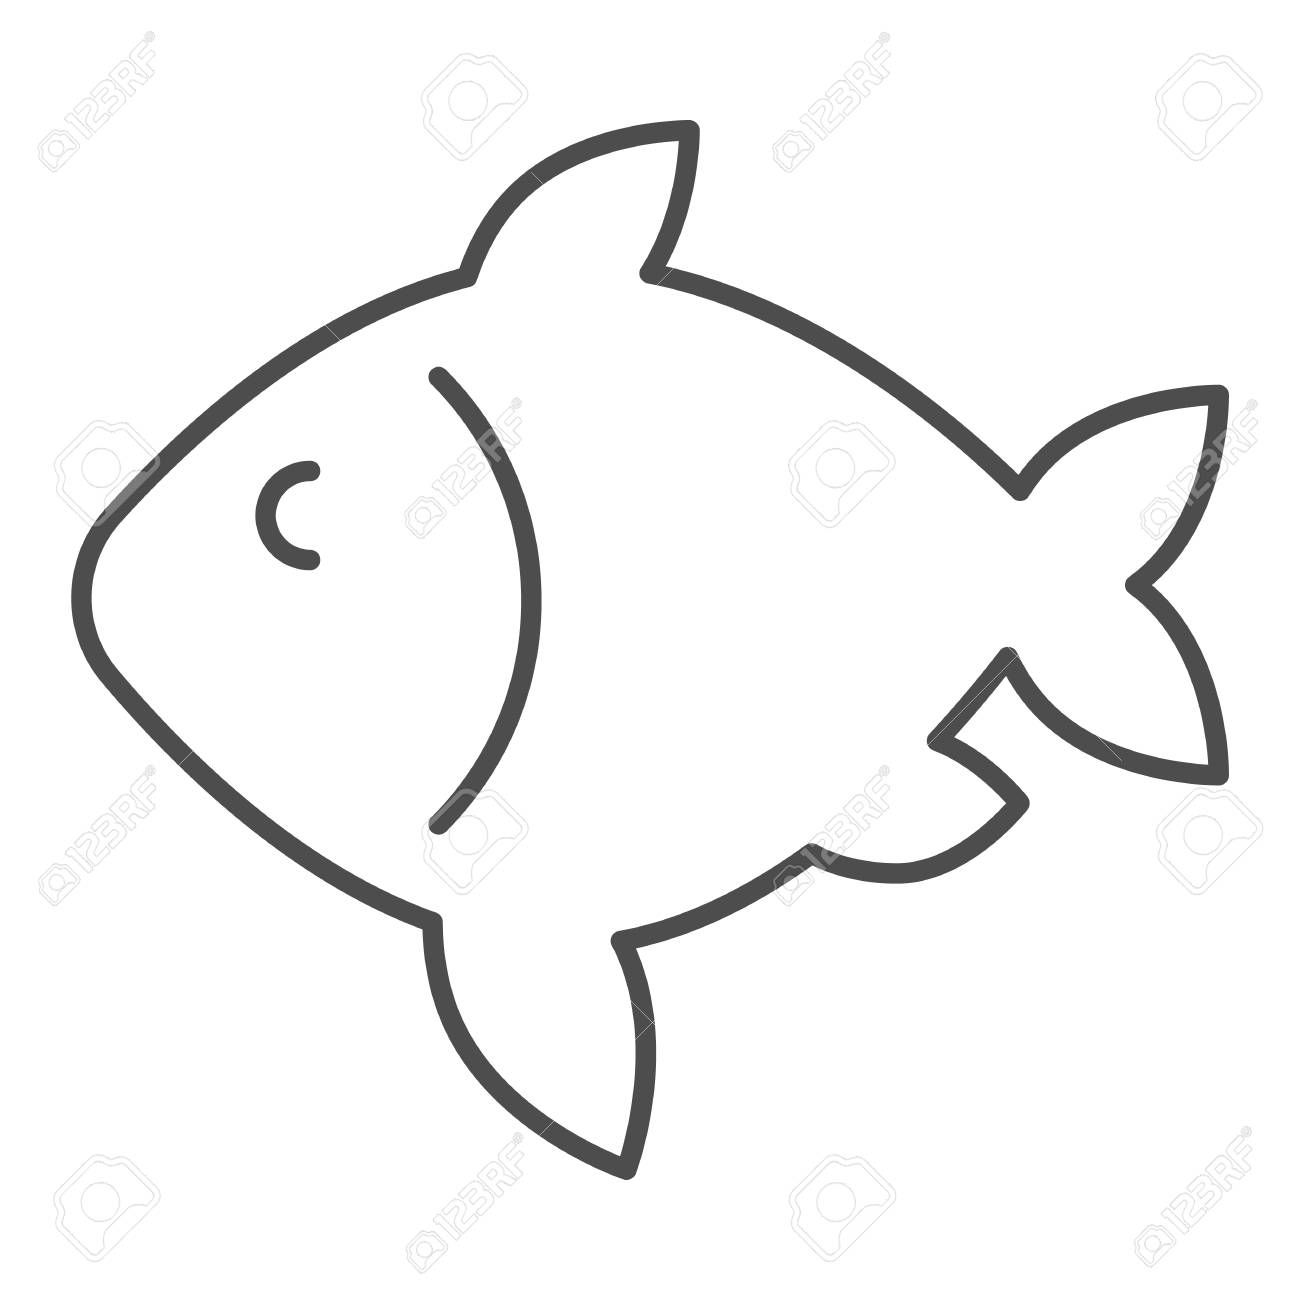 Carp Fish Thin Line Icon Seafood Vector Illustration Isolated On White Food Outline Style Design Designed Food Icon Png Icon Illustration Illustration Food